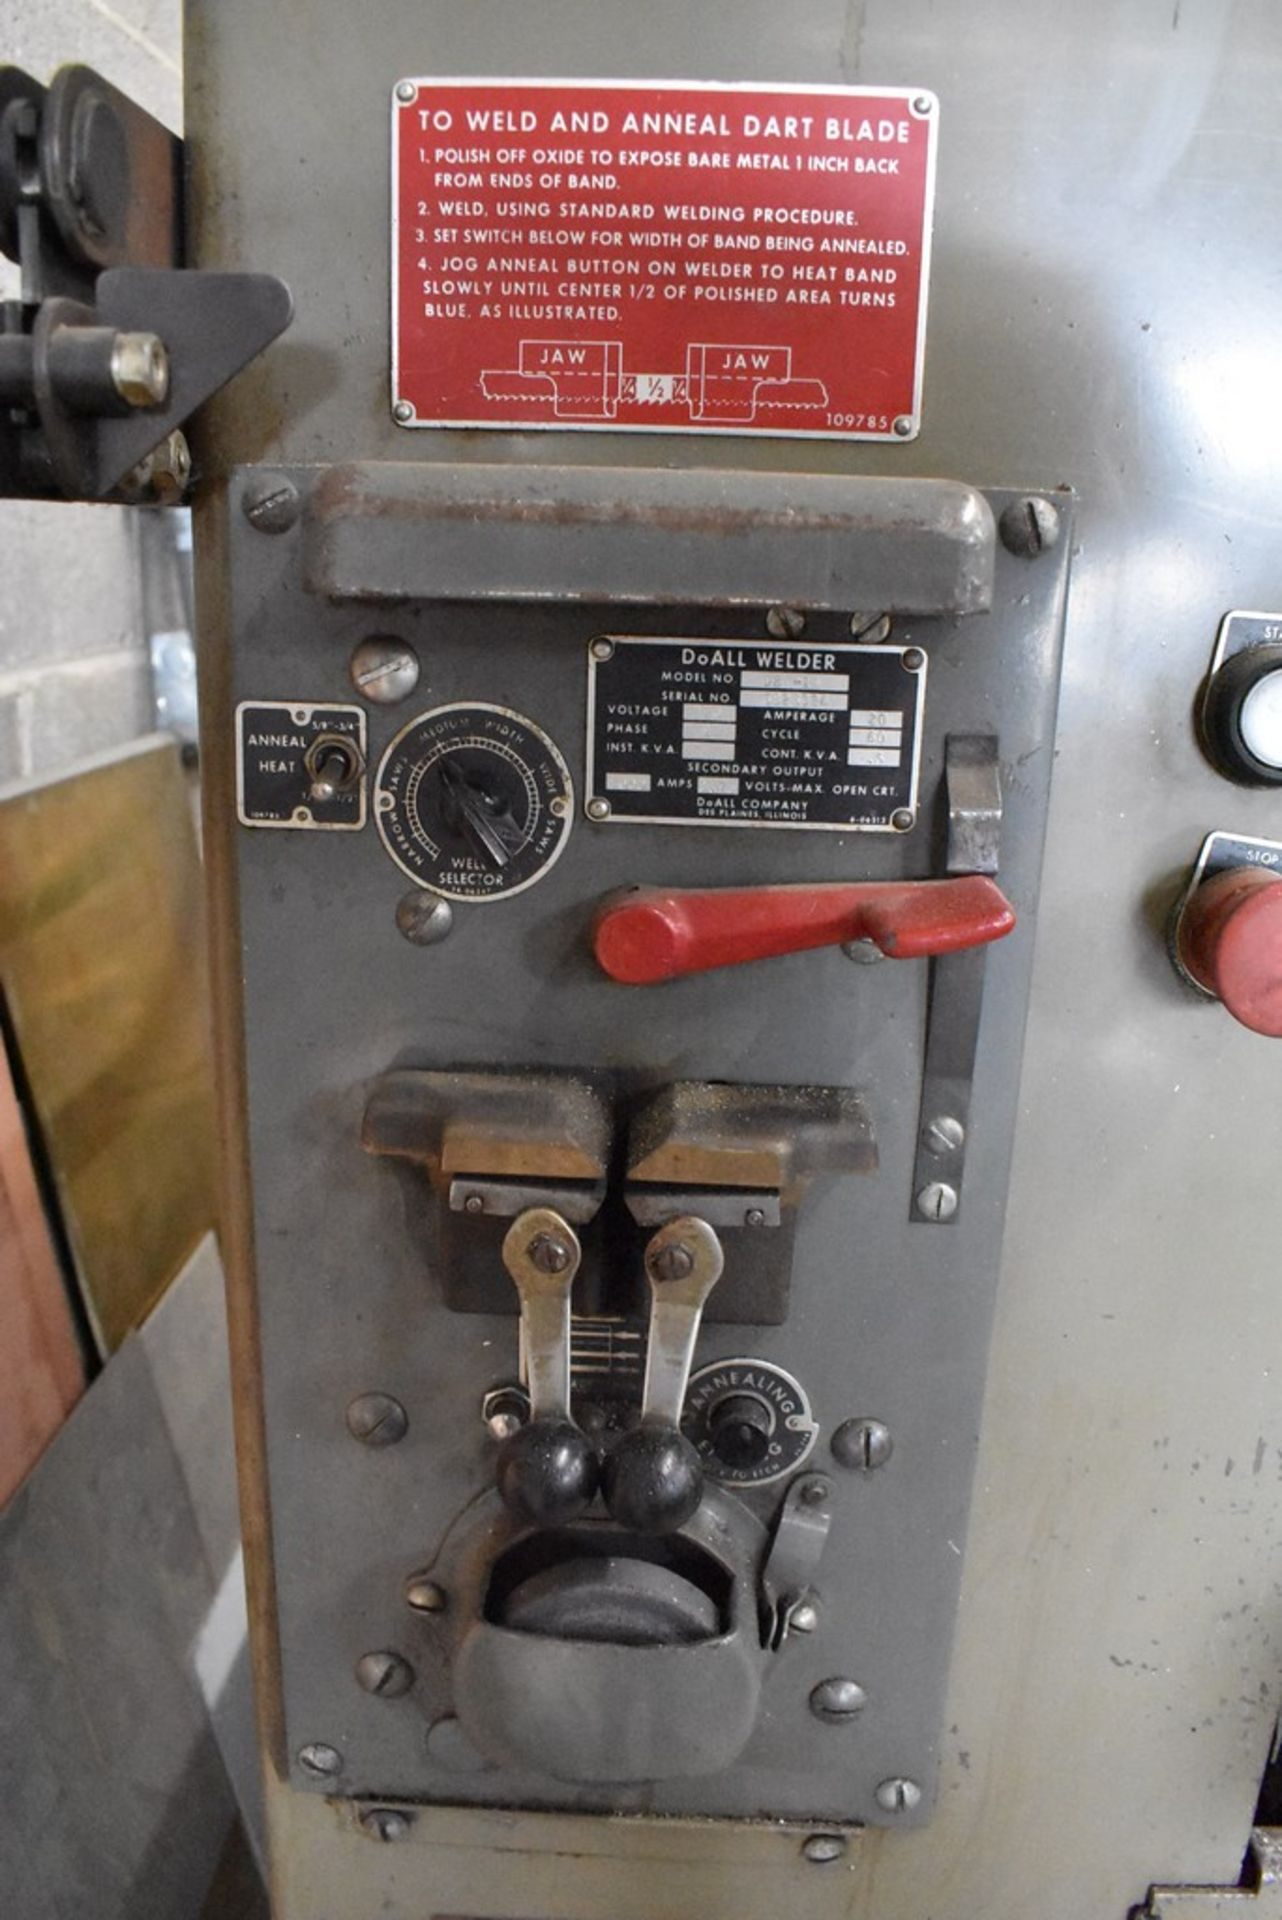 """DOALL 16"""" MODEL 1612-1 VERTICAL BAND SAW, S/N 148-681291, WITH BLADE WELDER - Image 5 of 9"""